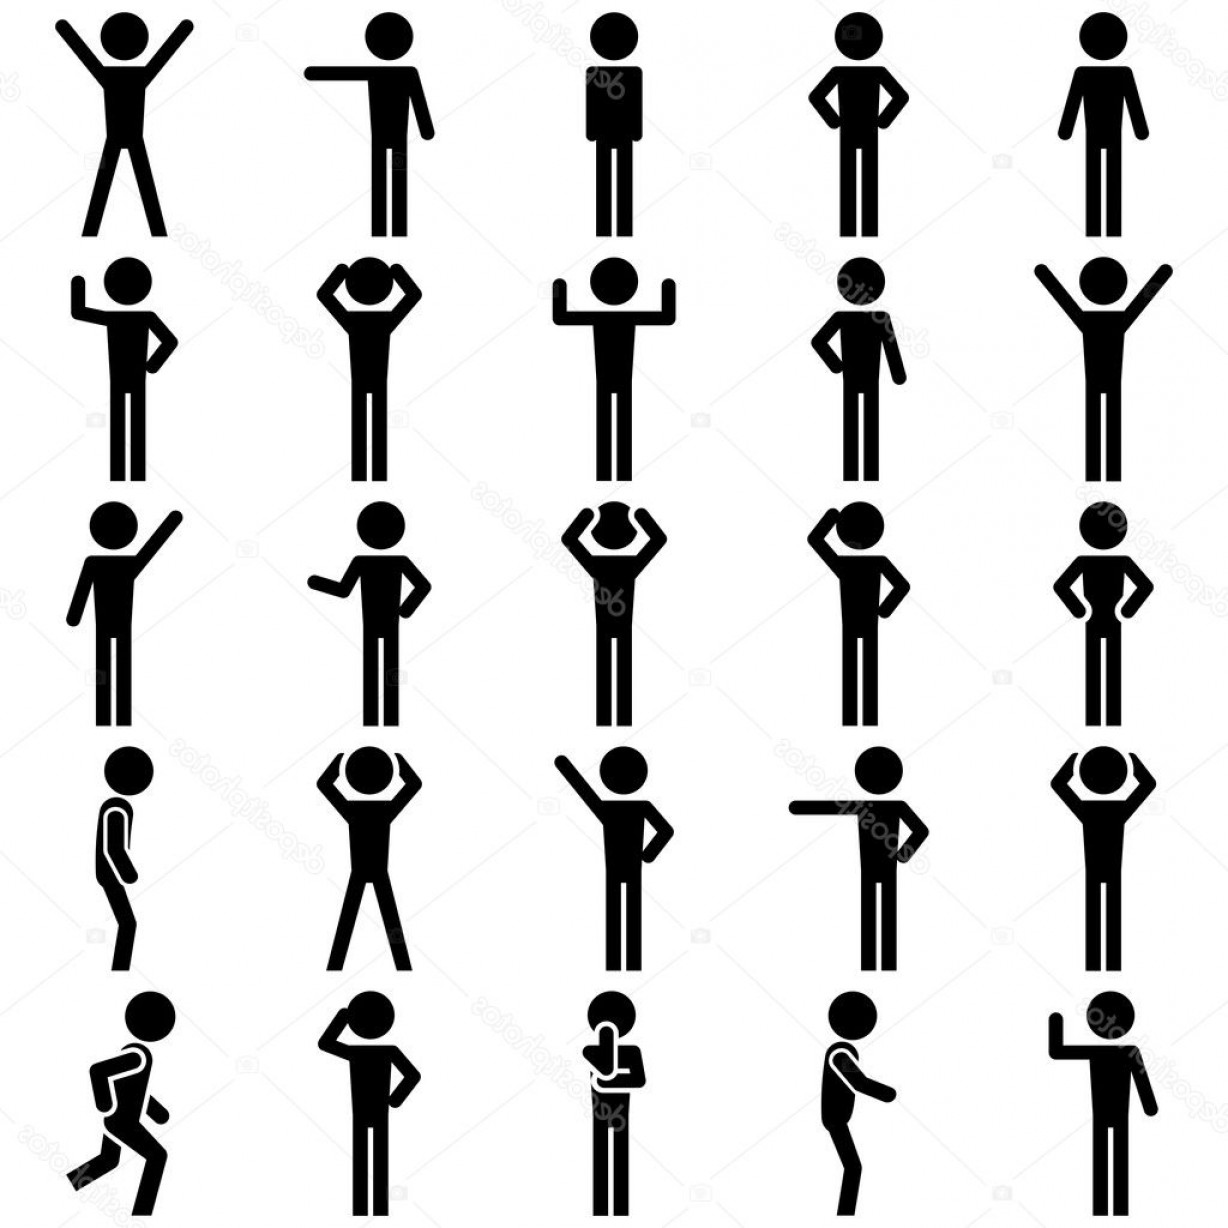 Stick Figure Positions Vector Set: Stock Illustration Stick Figure Positions Set Vector